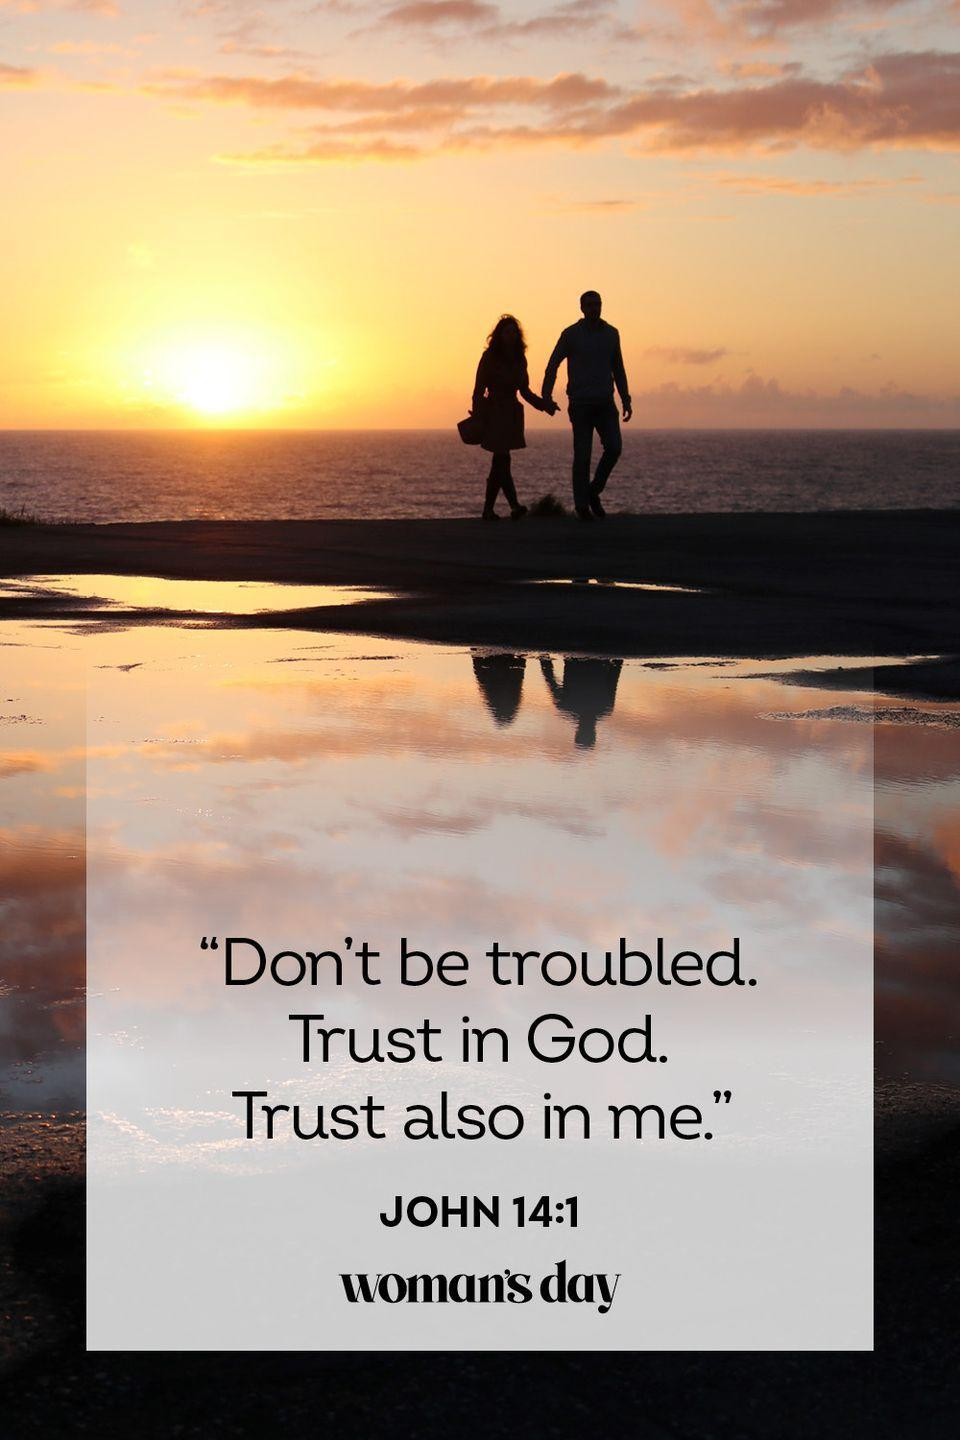 """<p>""""Don't be troubled. Trust in God. Trust also in me."""" </p><p><strong>The Good News:</strong> Believe in yourself, just as you believe in God, for you have the same power within yourself to overcome obstacles.</p>"""